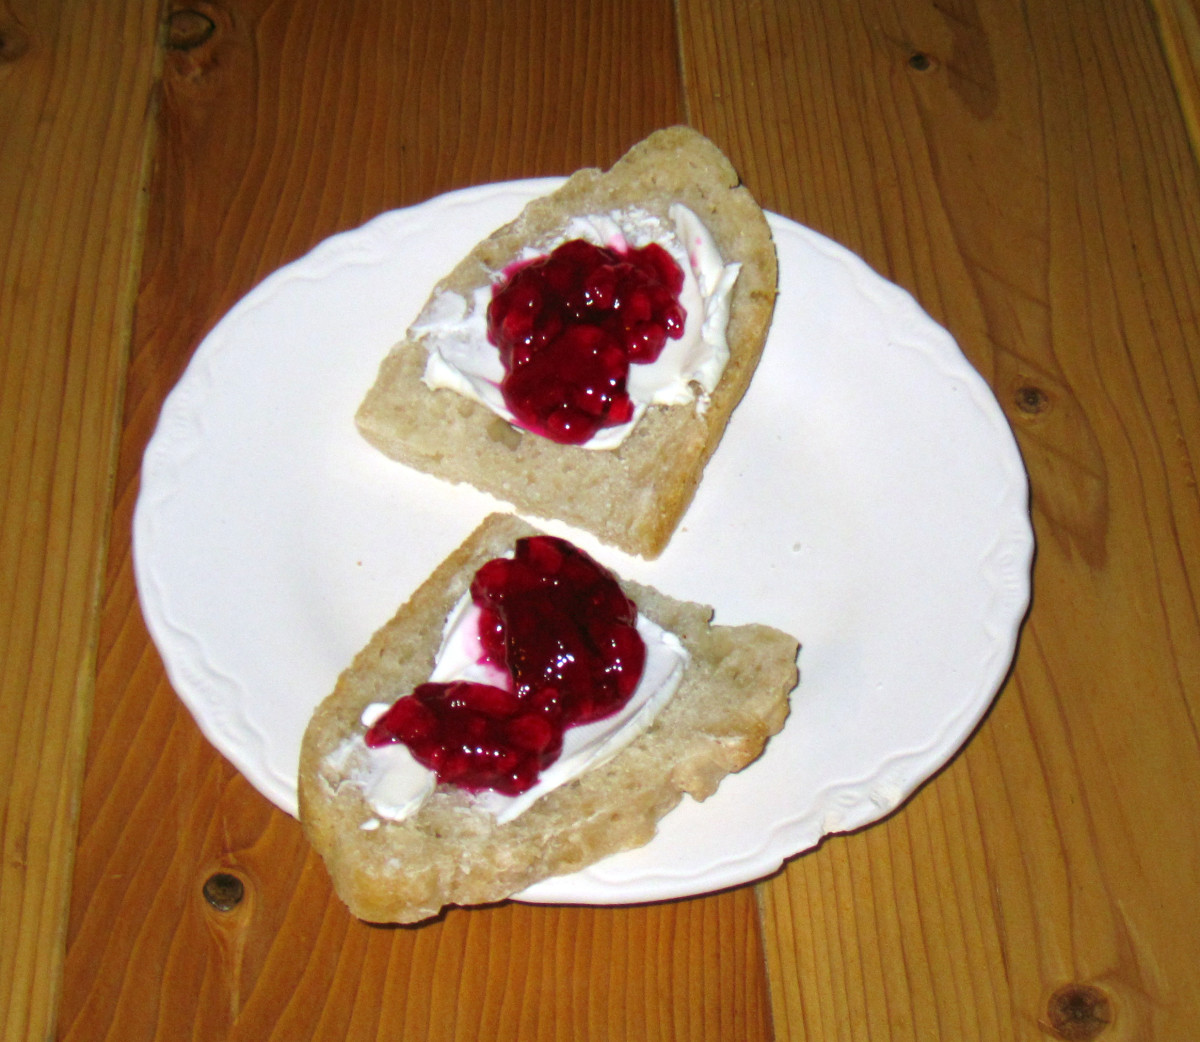 Prickly pear jam, served with cream cheese on homemade bread. Delicious!